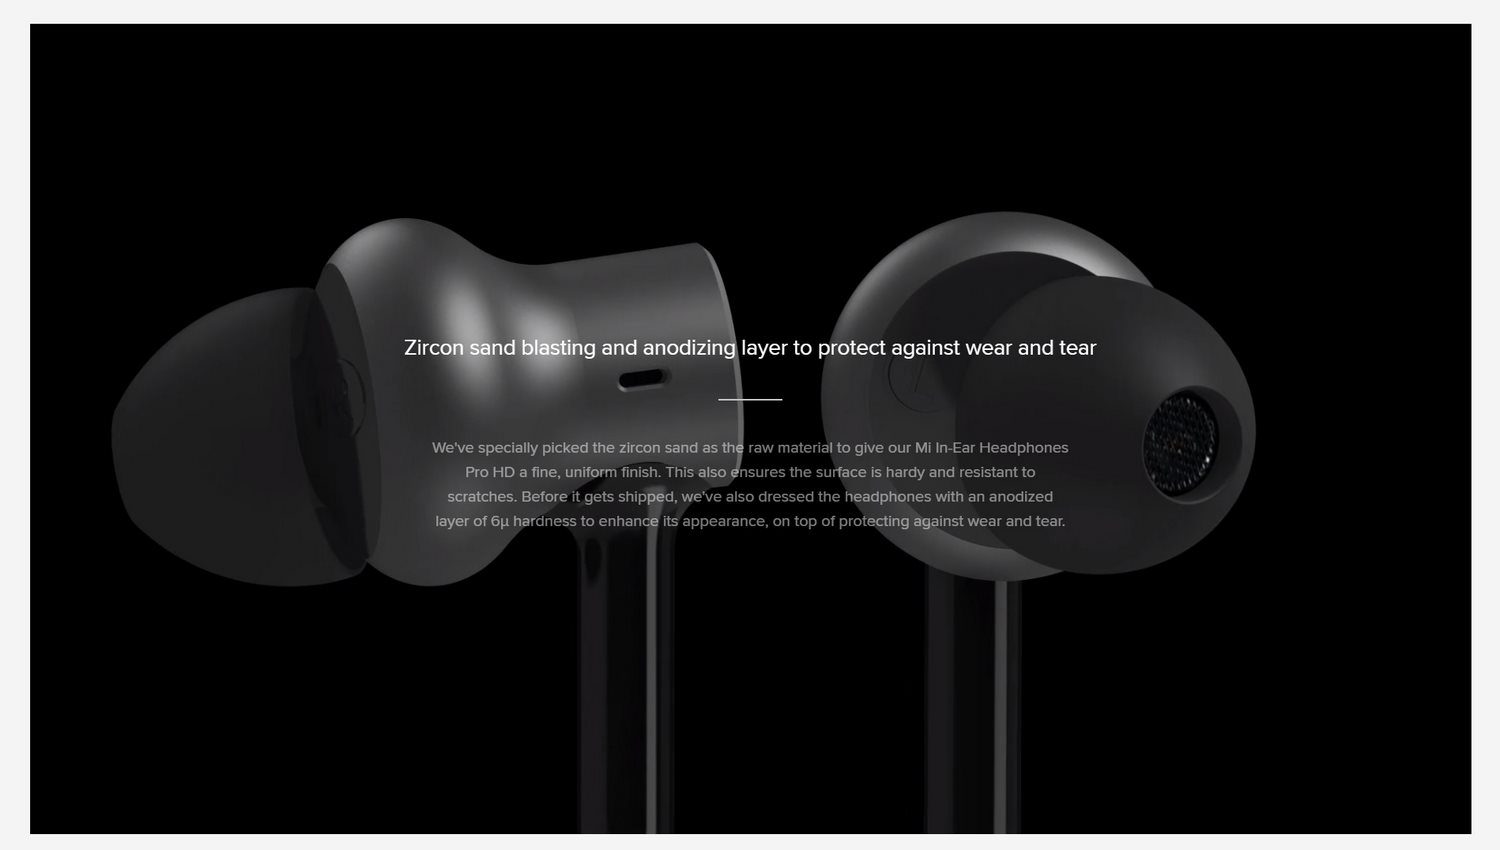 Mi-In-Ear-Headphones-Pro-Zircon sand blasting and anodizing layer to protect against wear and tear